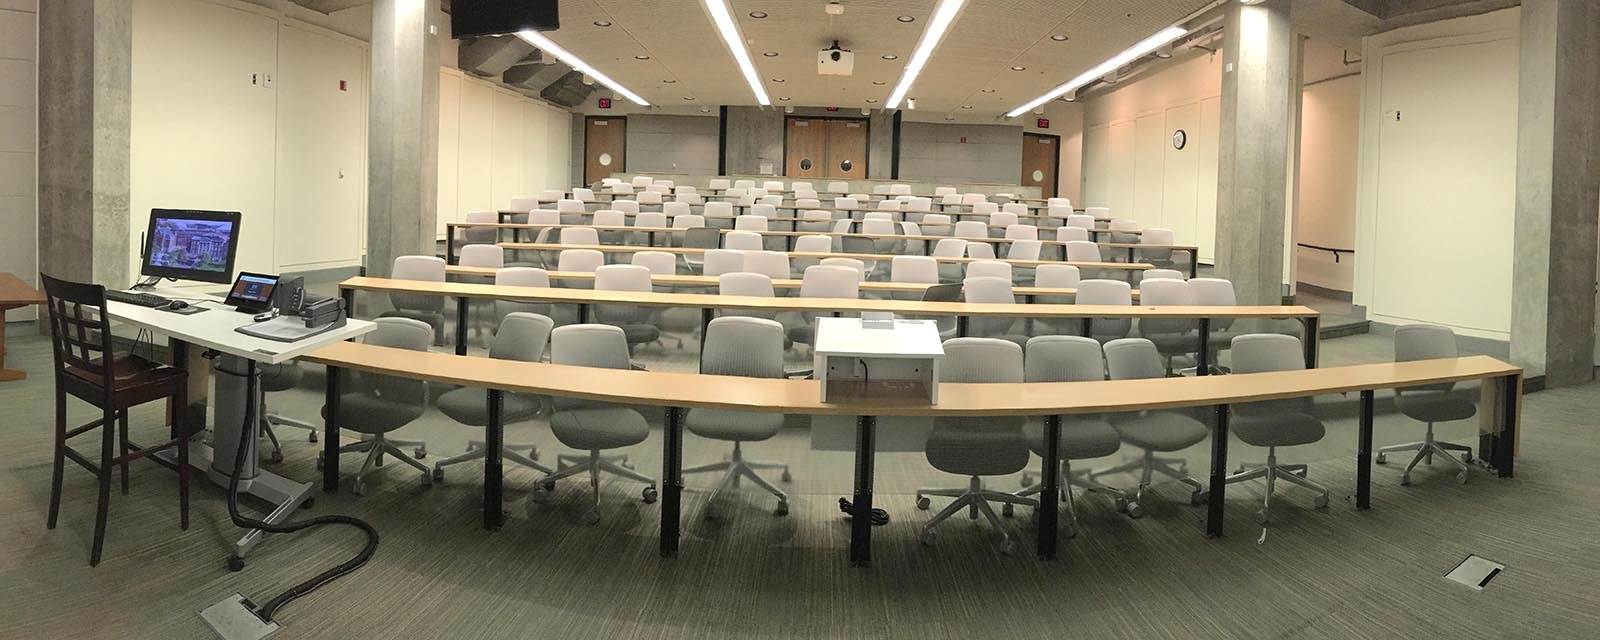 Panorama of Eggers 010 from front of room, chairs moveable with stationary desk, teaching station at left front of room